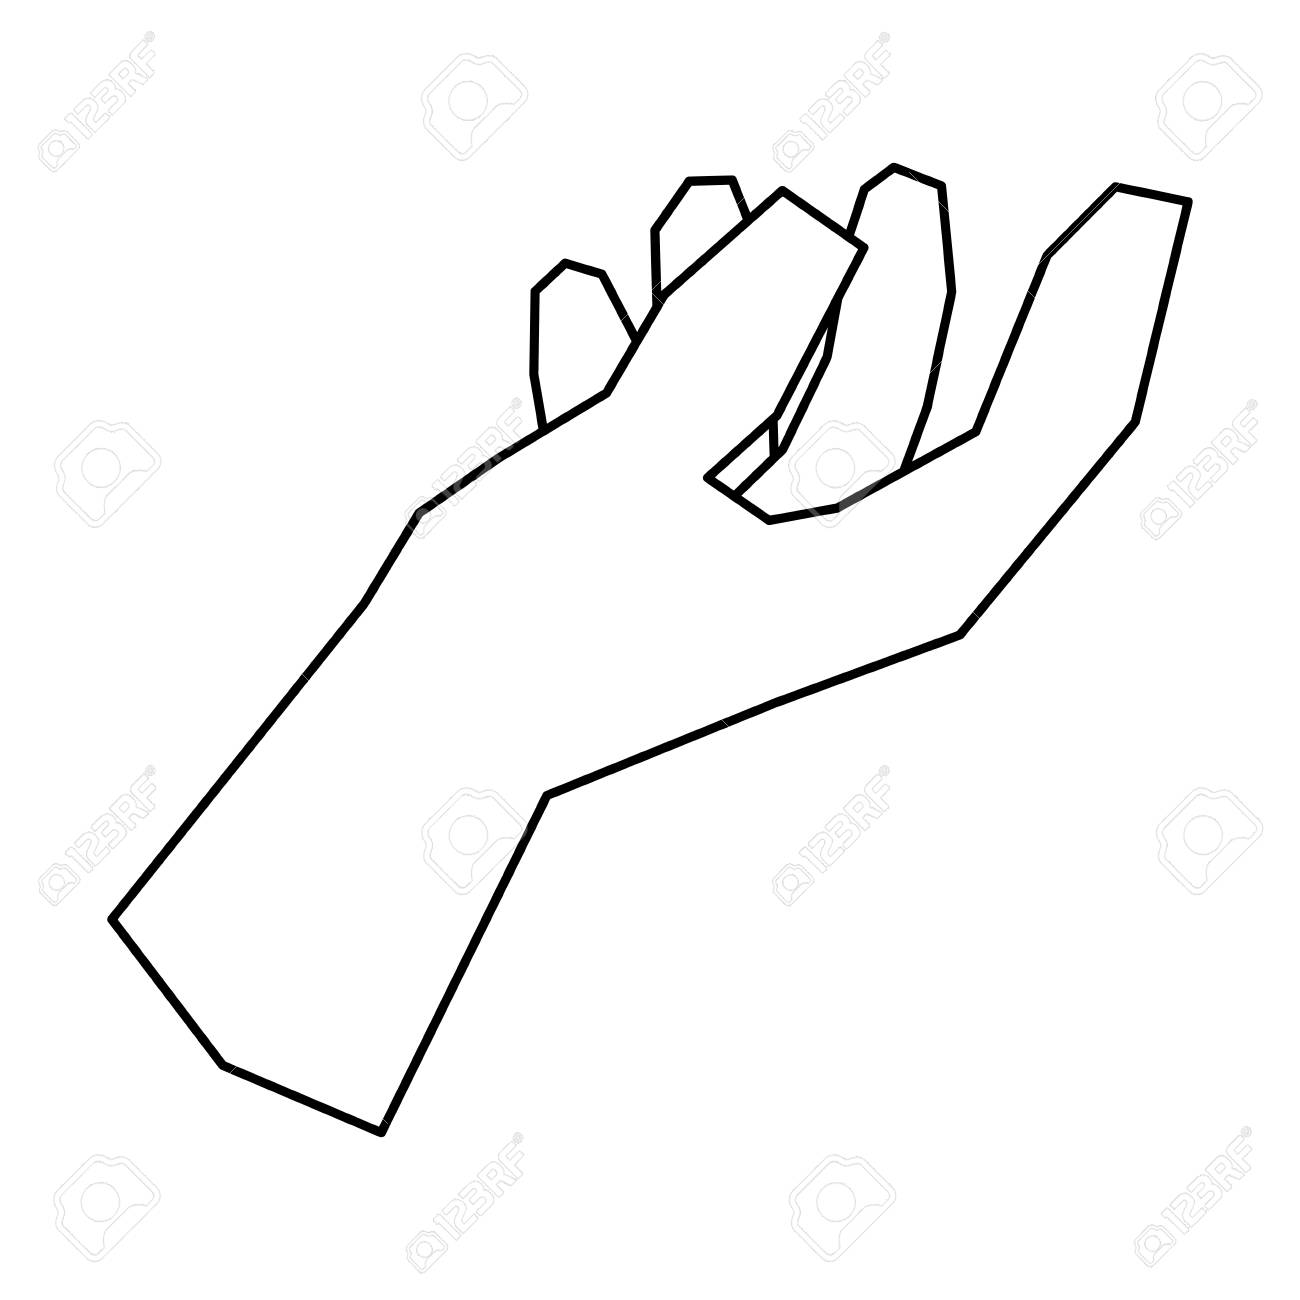 Outstretched hand symbol » Clipart Station.